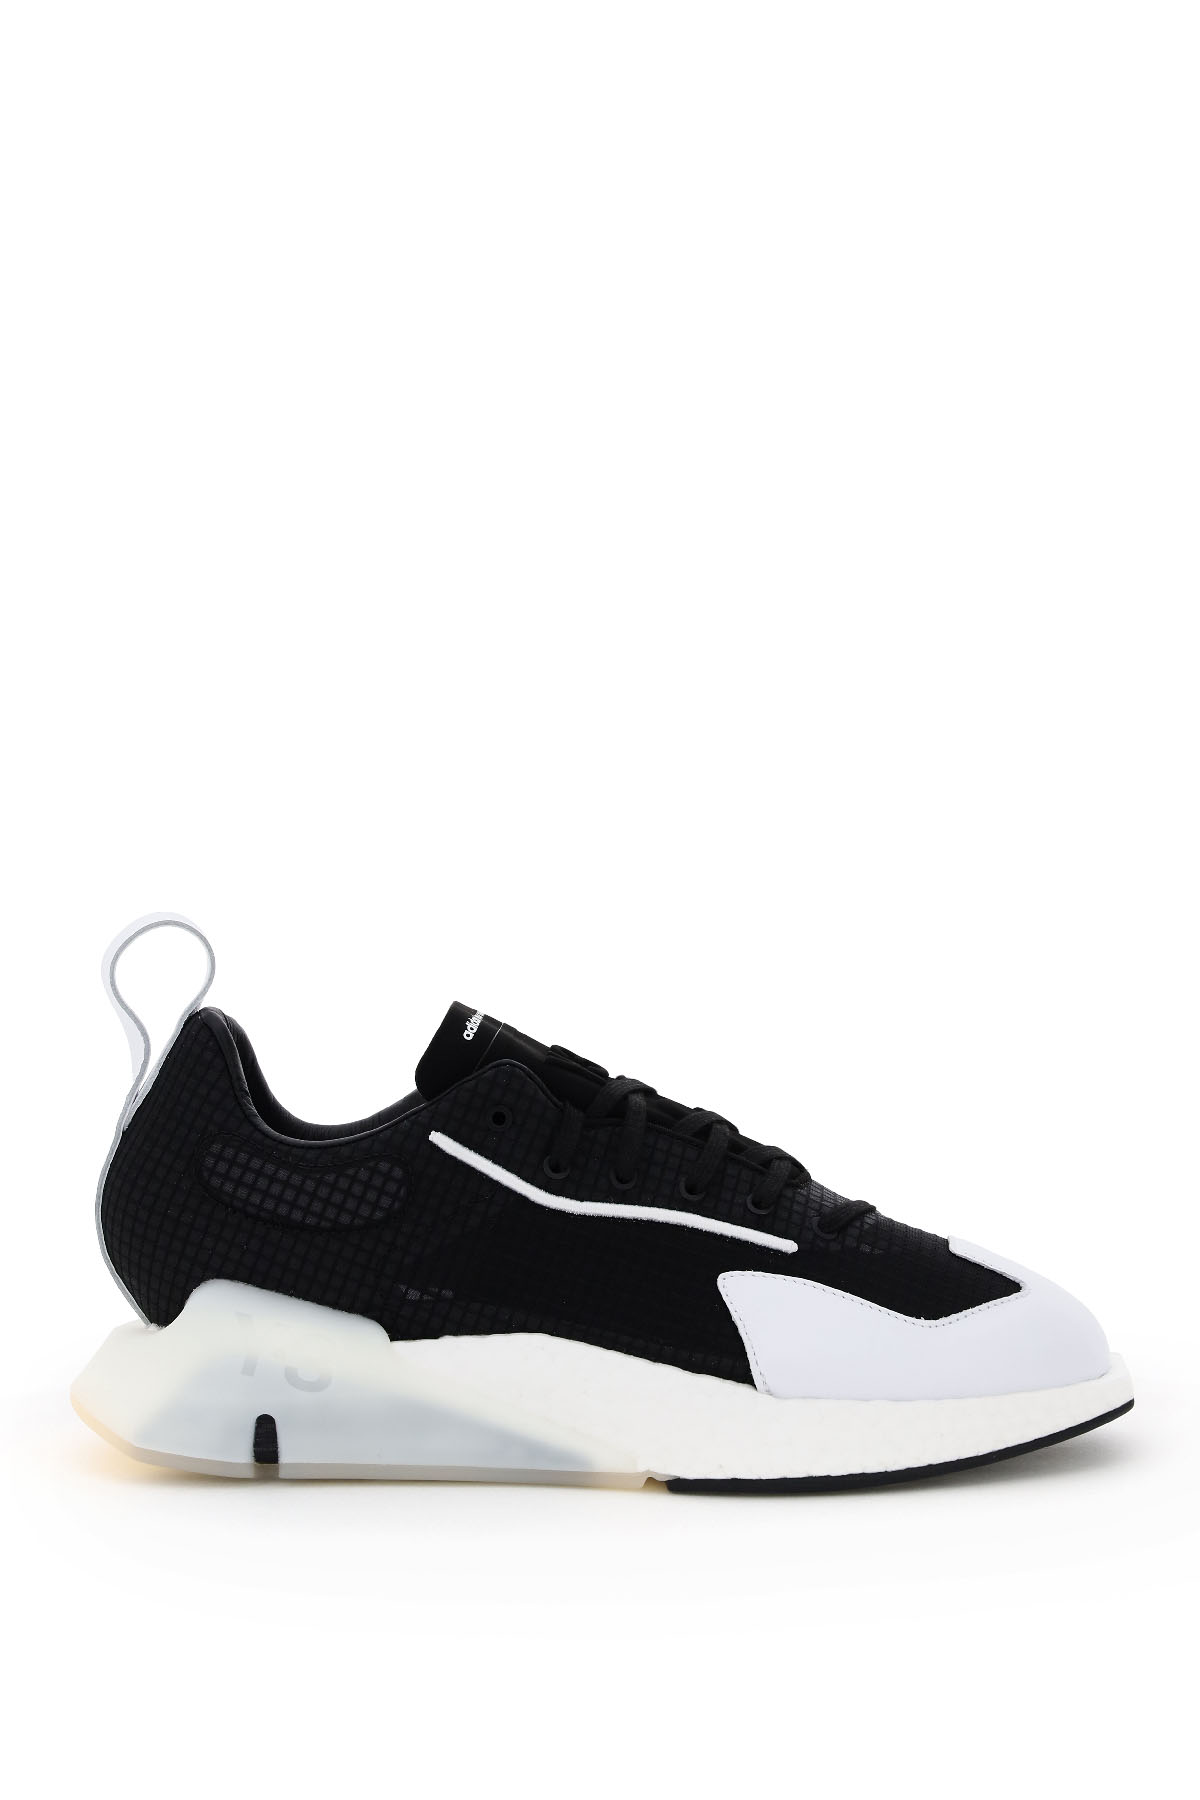 Y-3 Y-3 ORISAN SNEAKERS 9 Black, White Technical, Leather